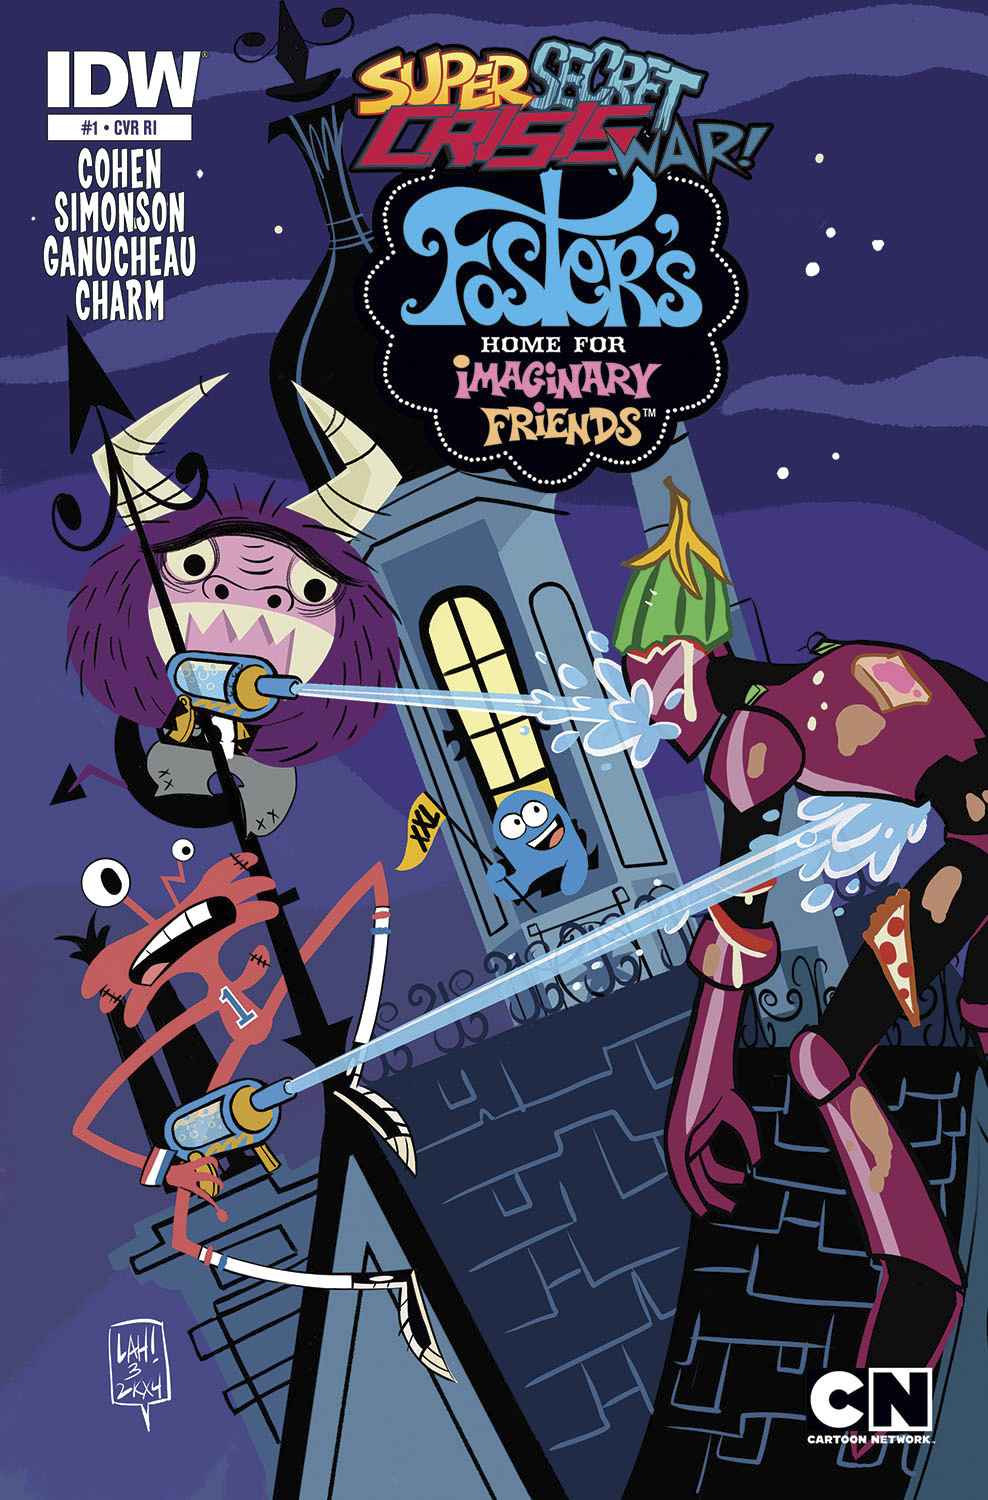 SSCW FOSTERS HOME FOR IMAGINARY FRIENDS #1 10 COPY INCV